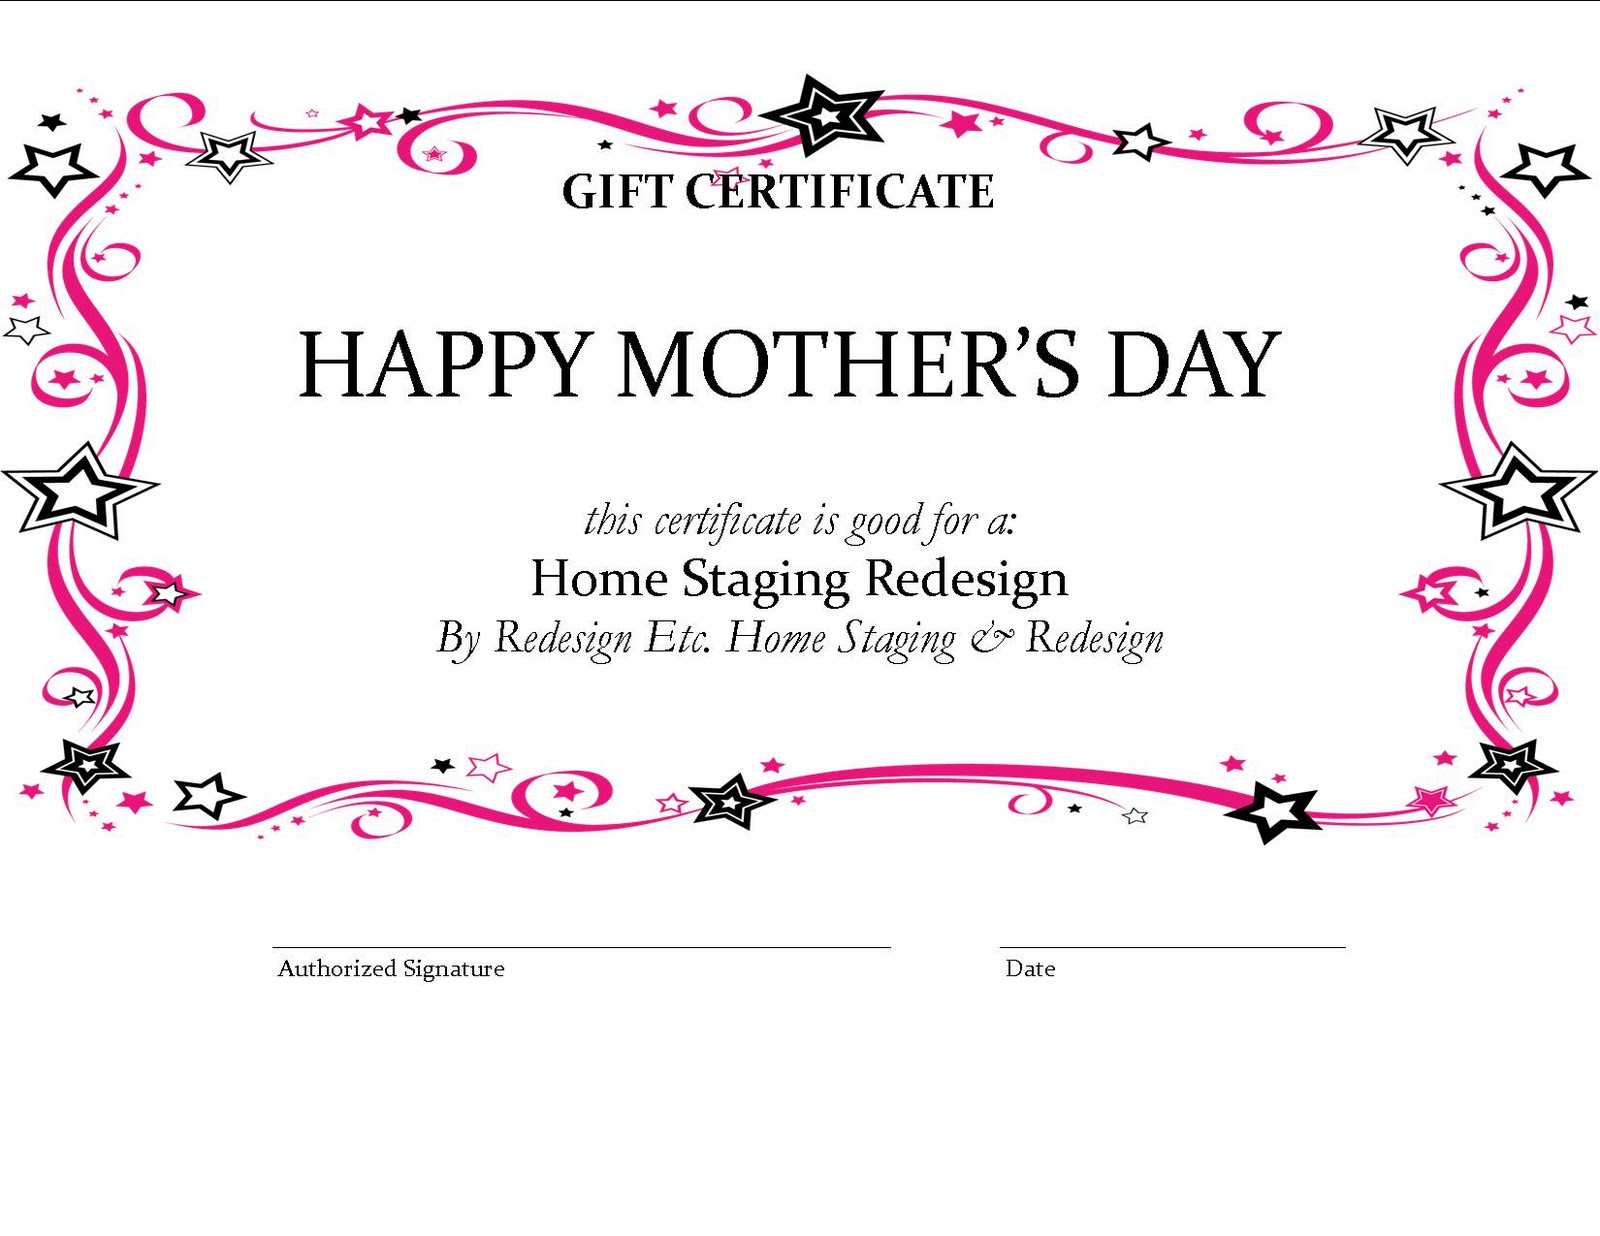 Free template for gift certificate microsoft office certificate mothers day gift certificate template mother2527s2bday2bgift2bcertificate mother s day gift certificate template free template for gift certificate xflitez Choice Image